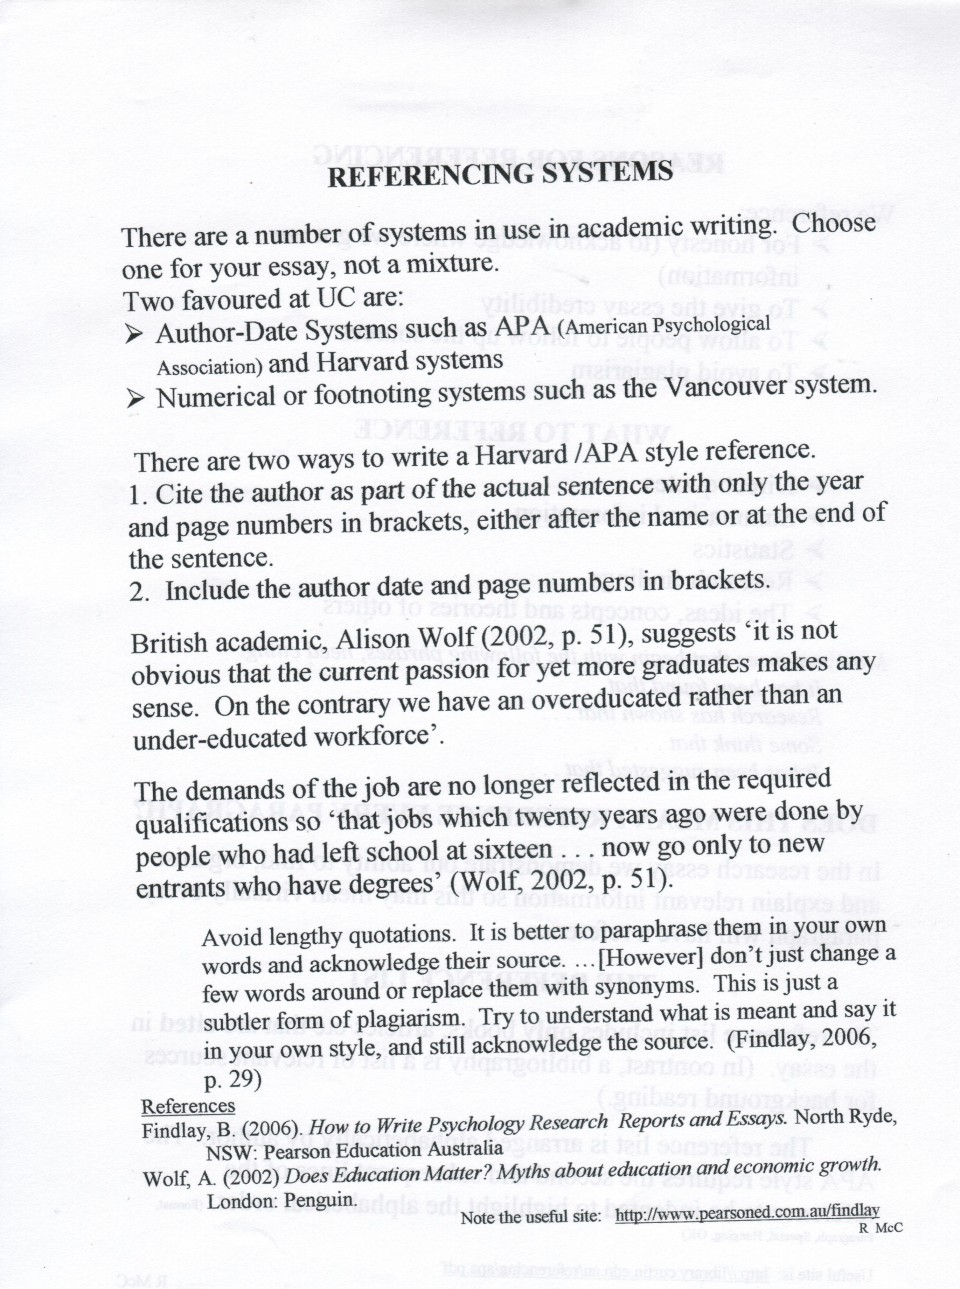 016 Essay Example Quoting In An Cite Essays Work Cited Works How To Write Bibliography For Harvard Referencing Sy Uk Law Extended Legal Annotated Frightening Examples Of Dialogue Shakespeare A Play Mla 960